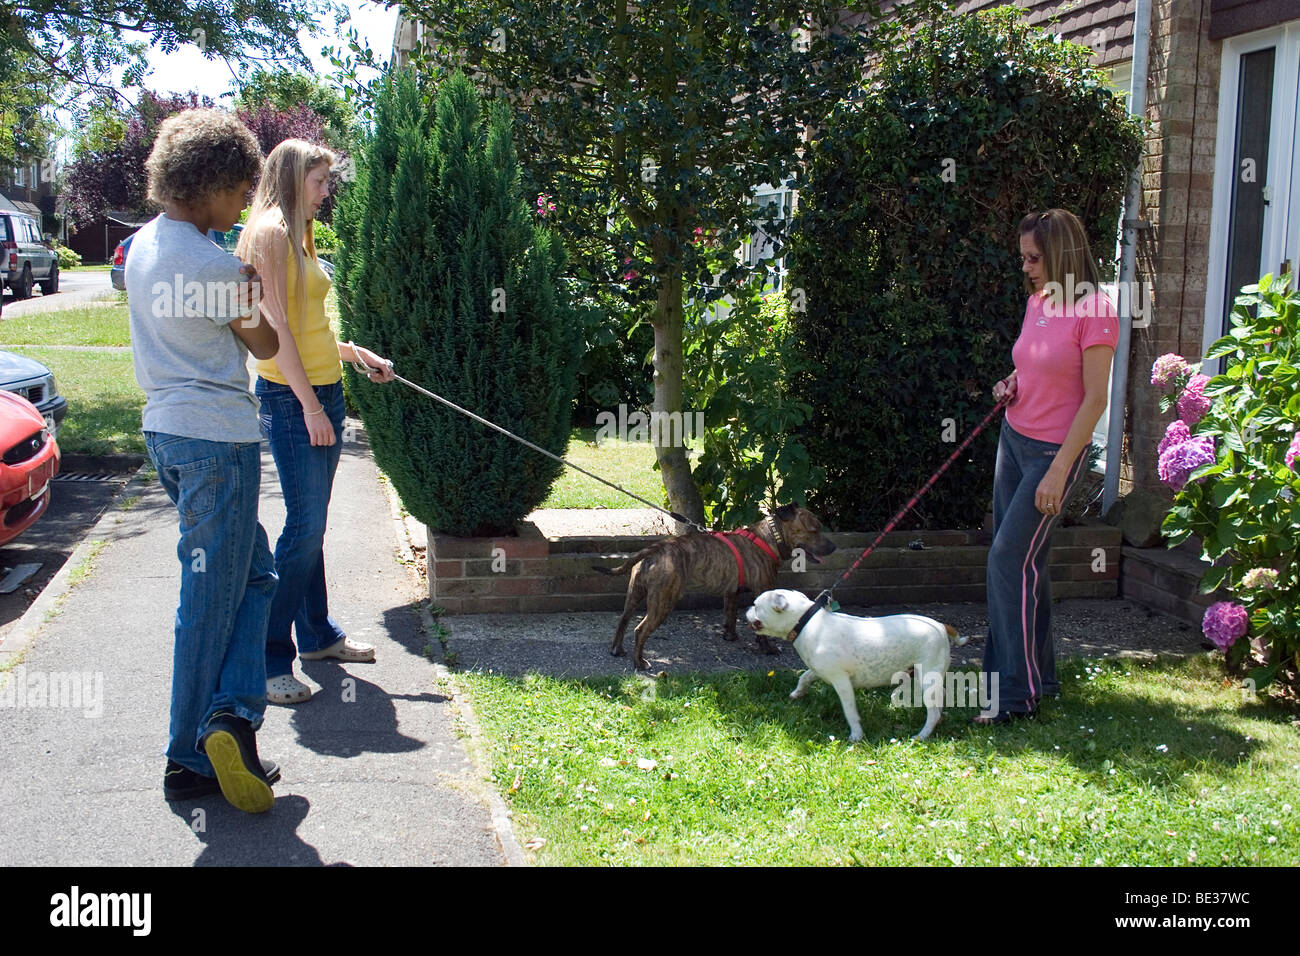 neighbours with staffordshire bull terriers chatting in street - Stock Image